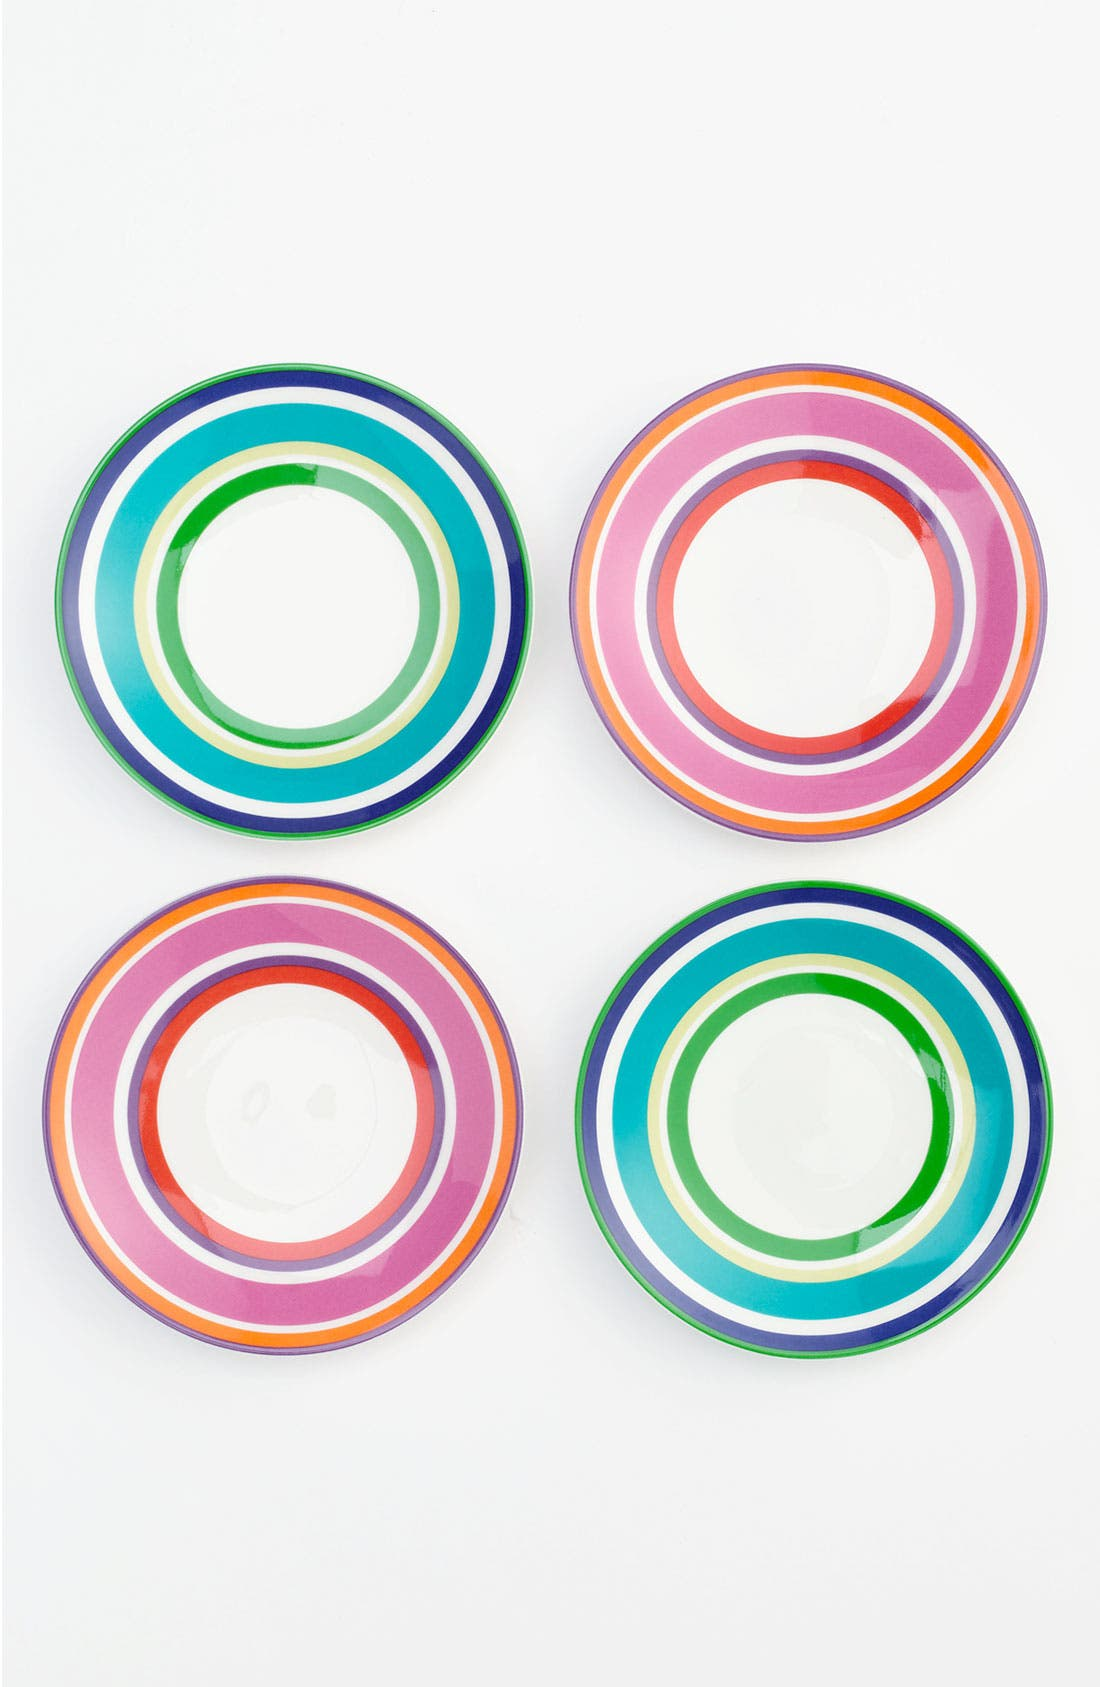 Main Image - kate spade new york 'say the word' tidbits plates (set of 4)